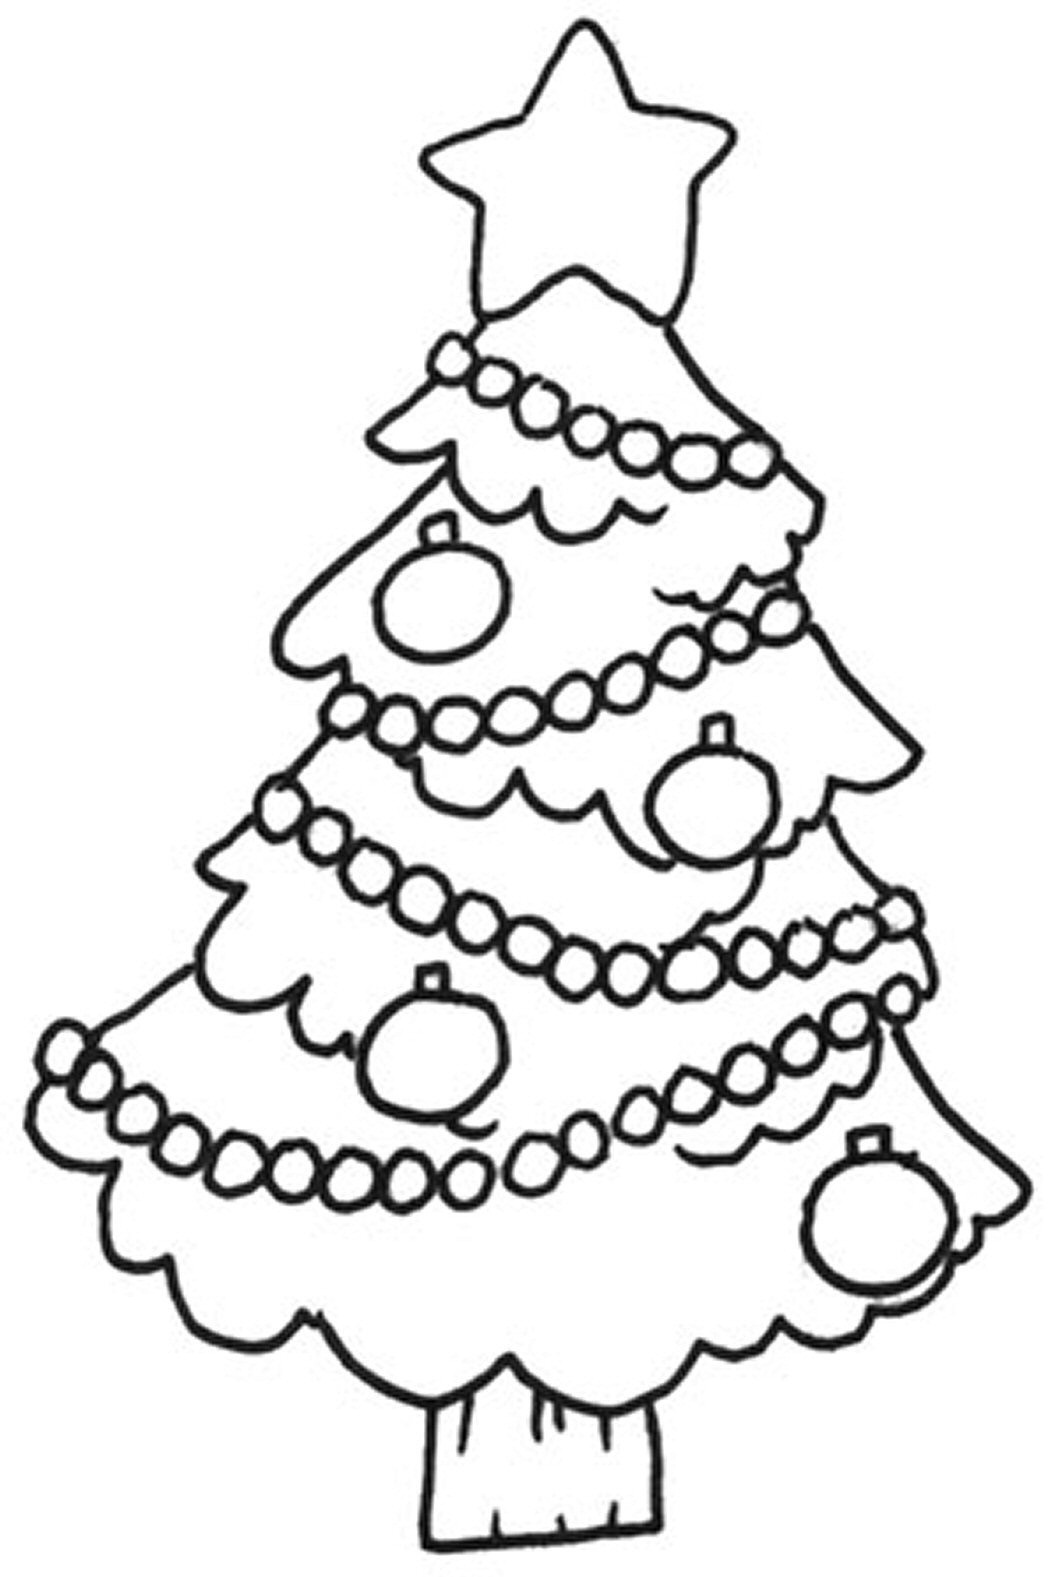 coloring pages of christmas trees free printable christmas tree coloring pages for kids christmas trees of pages coloring